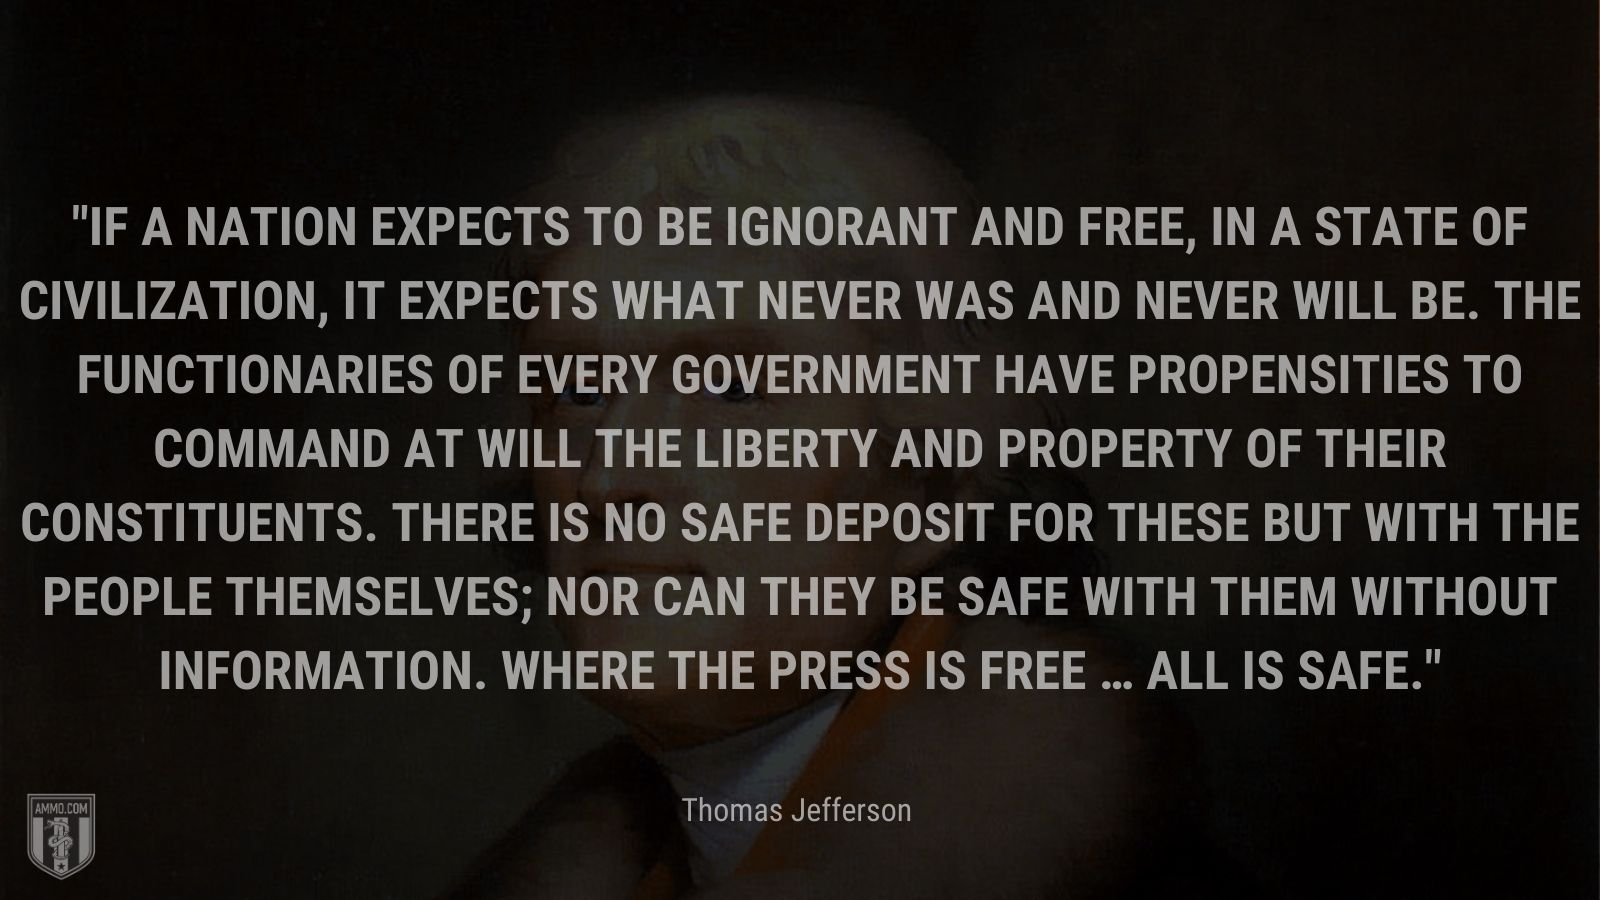 """""""If a nation expects to be ignorant and free, in a state of civilization, it expects what never was and never will be. The functionaries of every government have propensities to command at will the liberty and property of their constituents. There is no safe deposit for these but with the people themselves; nor can they be safe with them without information. Where the press is free … all is safe."""" - Thomas Jefferson"""